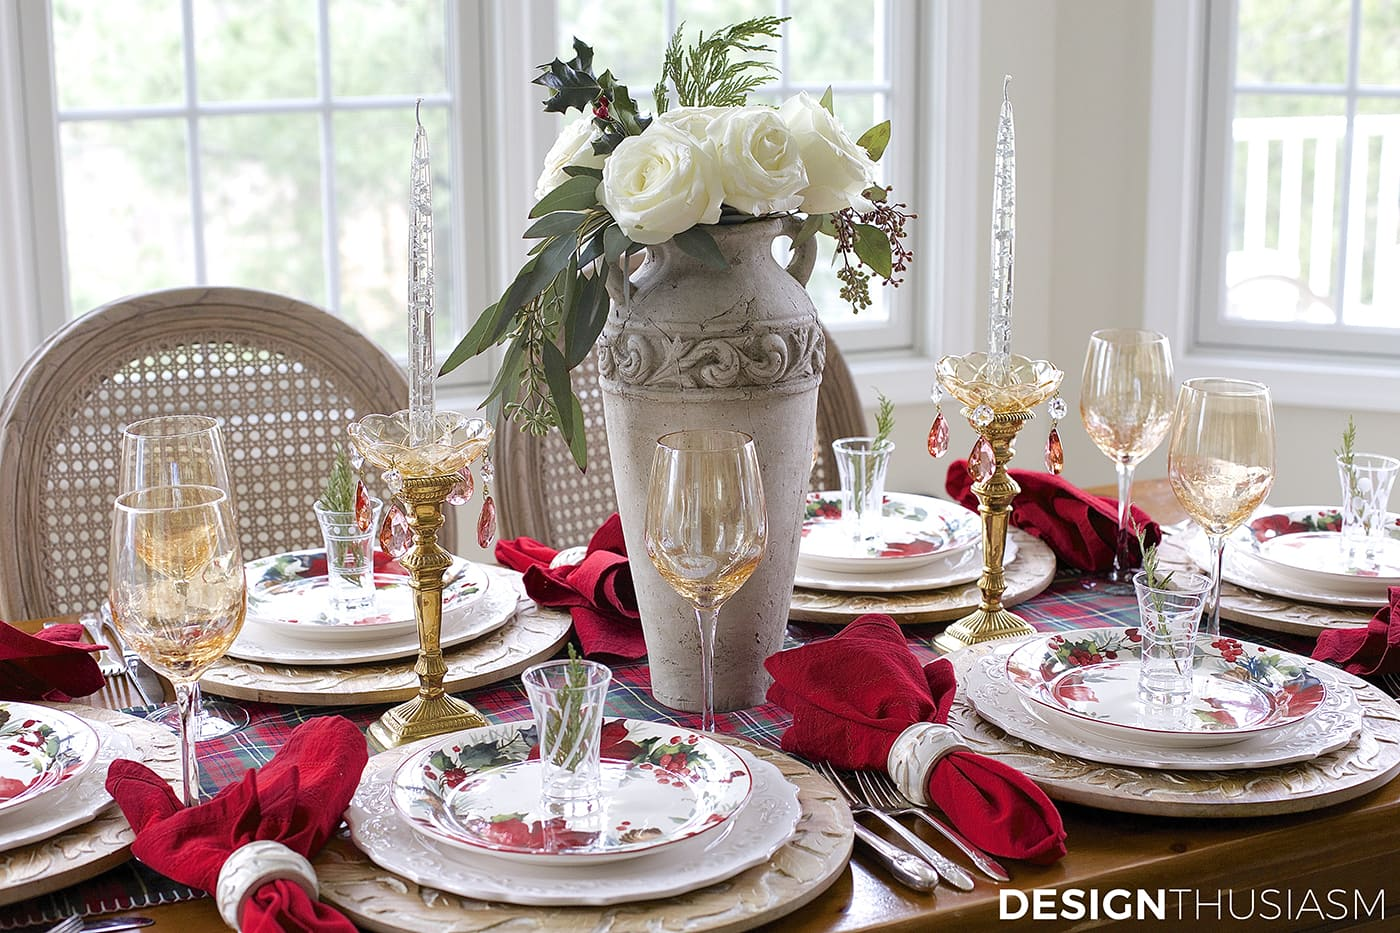 10 Tips for Making Your Holiday Decorations More Special